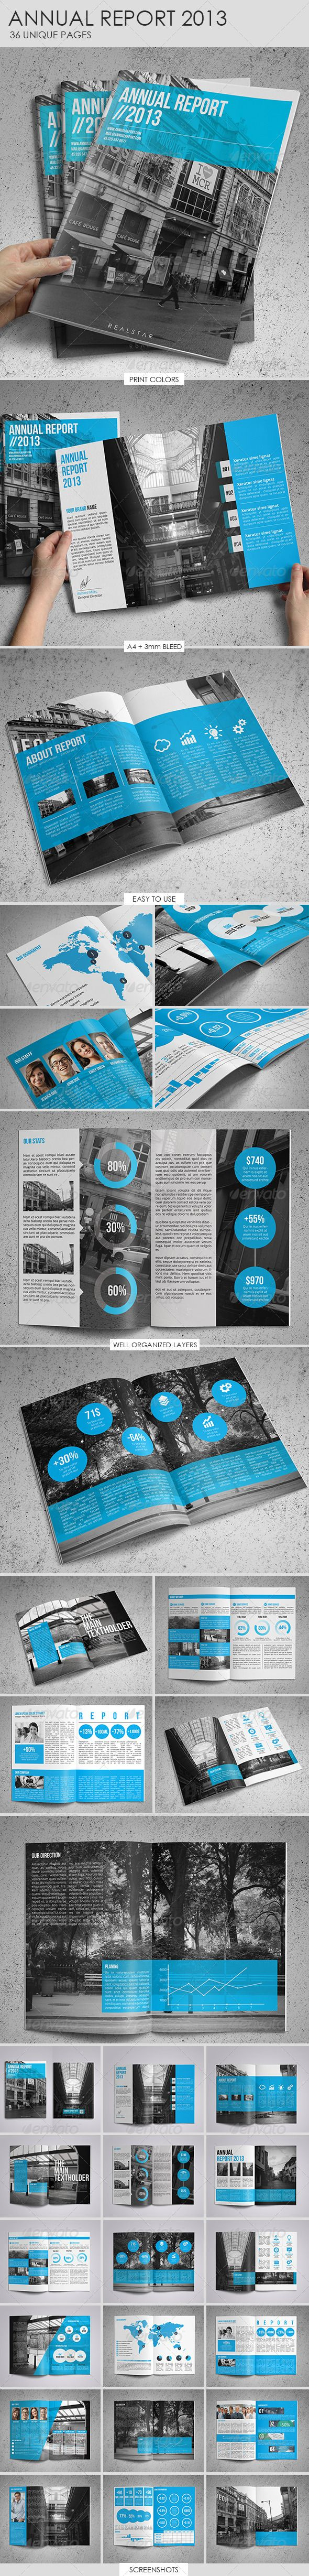 Annual Report Template http://graphicriver.net/item/annual-report-template-/4894871?WT.ac=portfolio_1=portfolio_author=Realstar